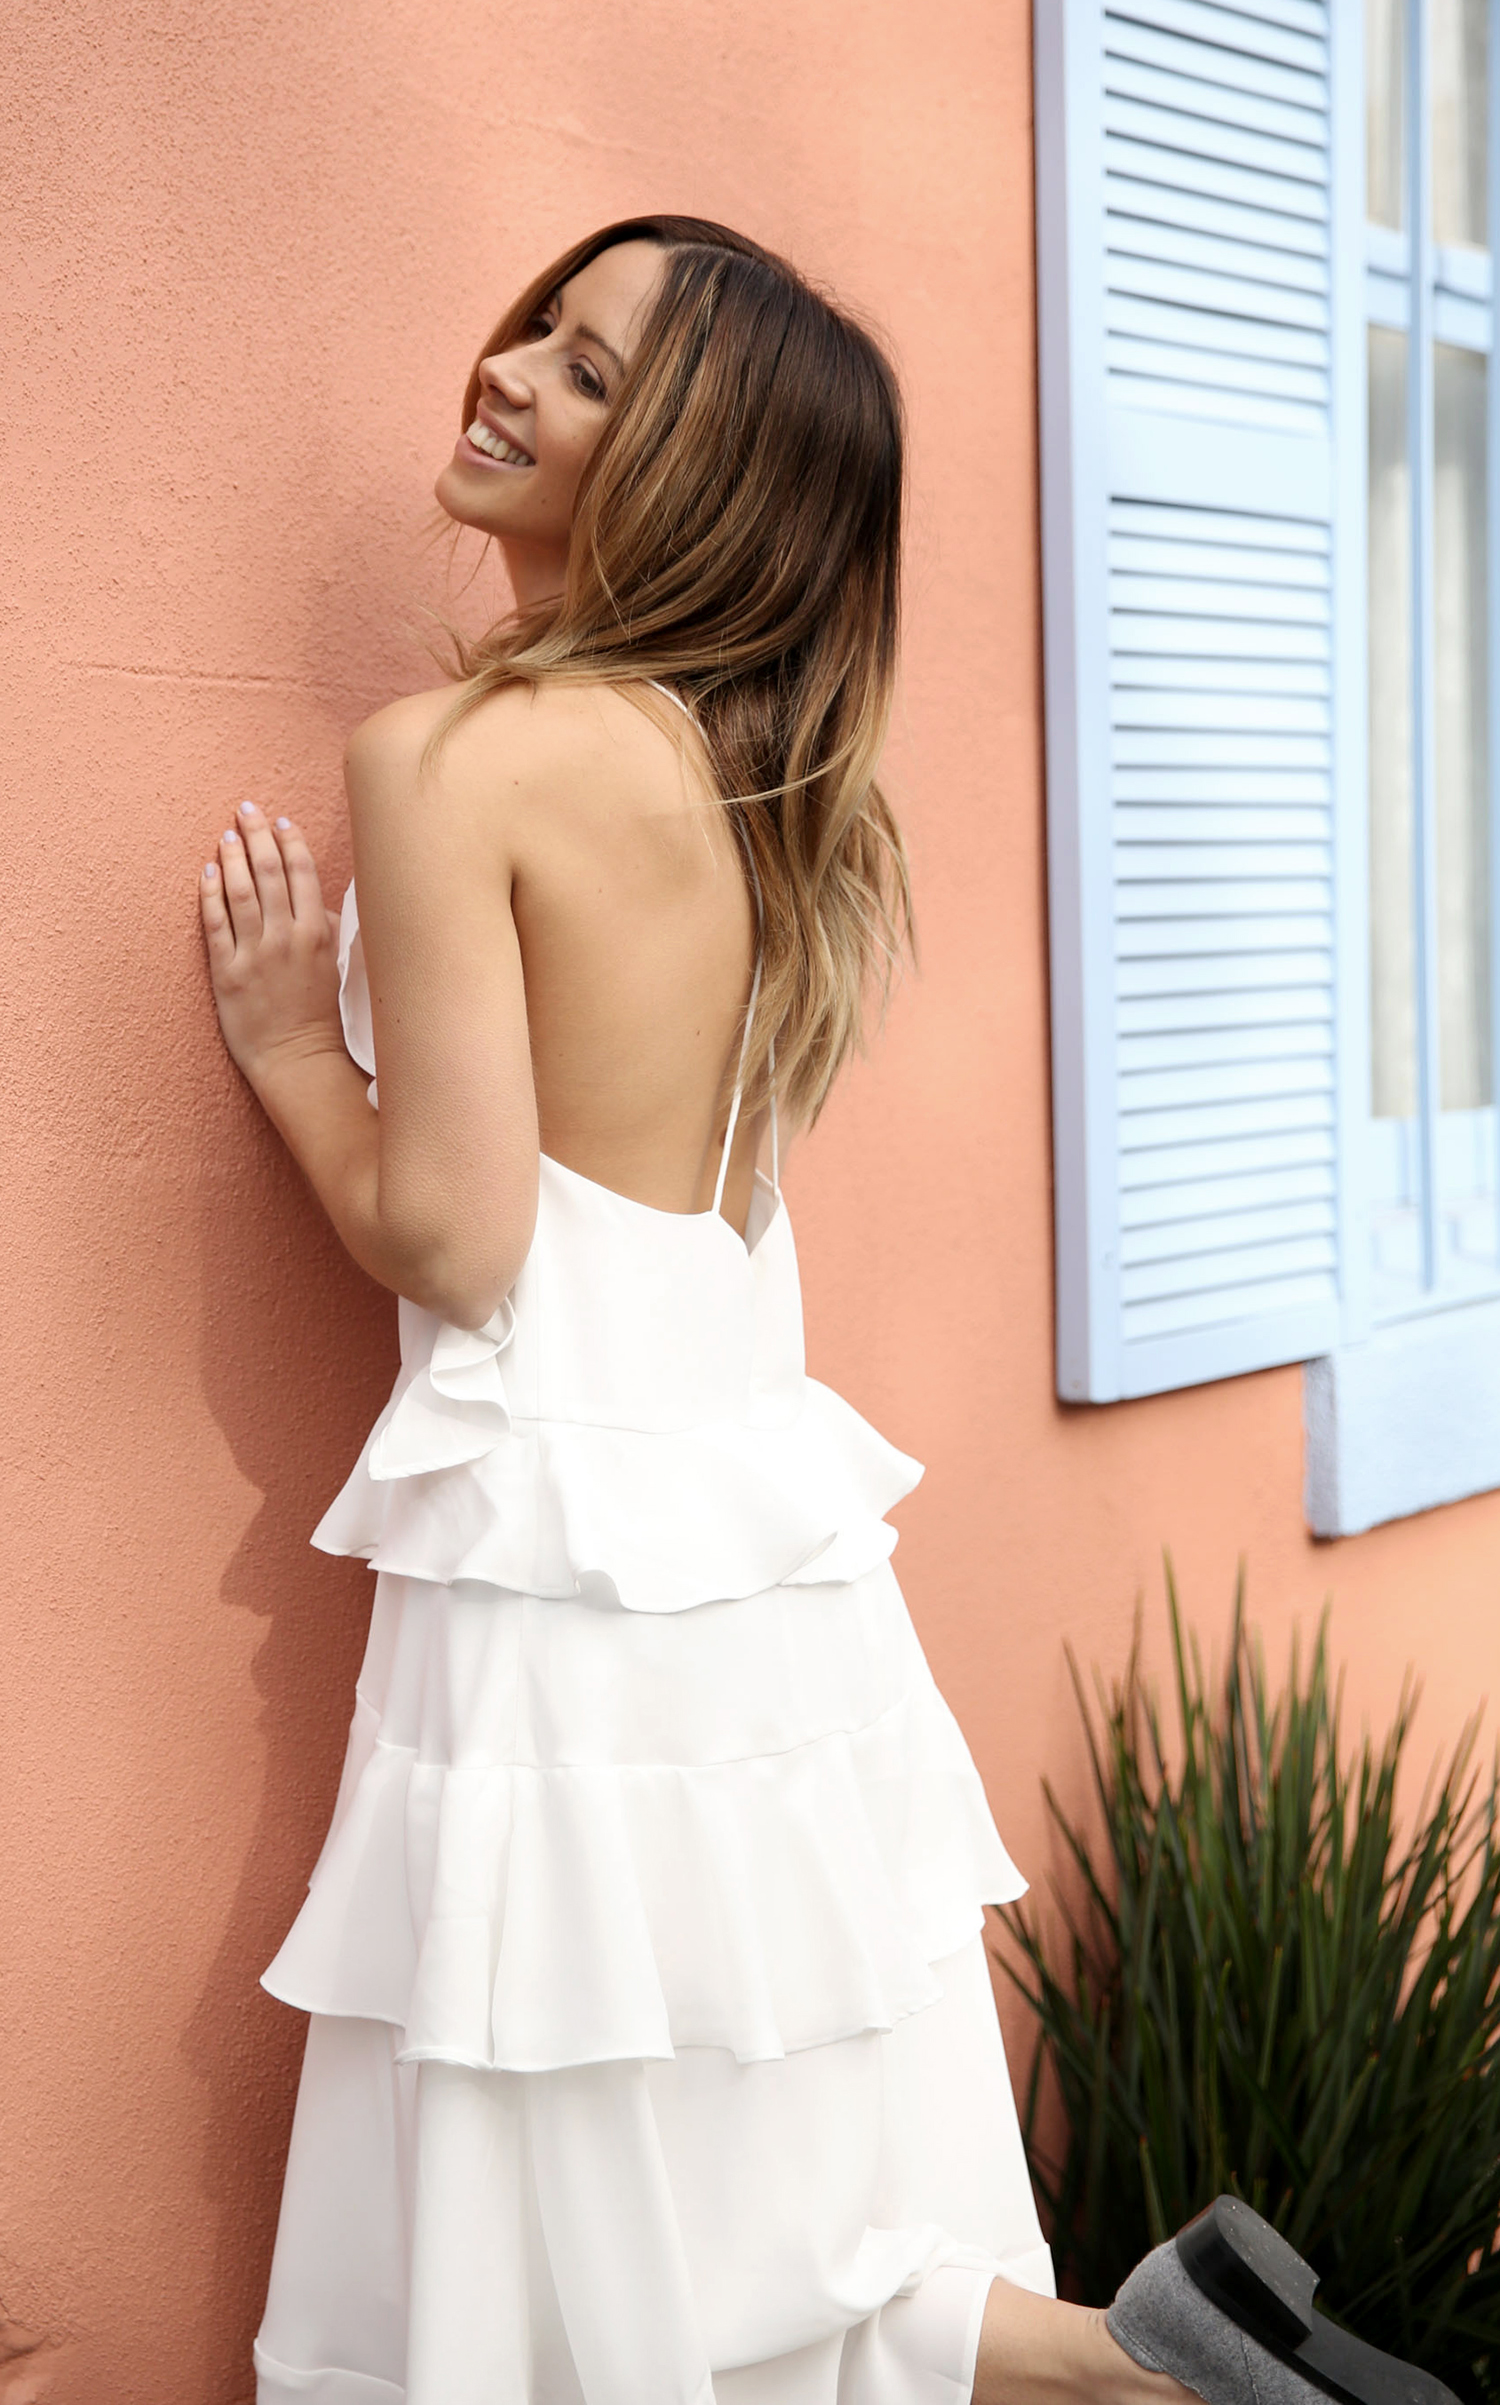 FriendInFashion_WhiteDress_StreetStyle_Vogue_3.jpg